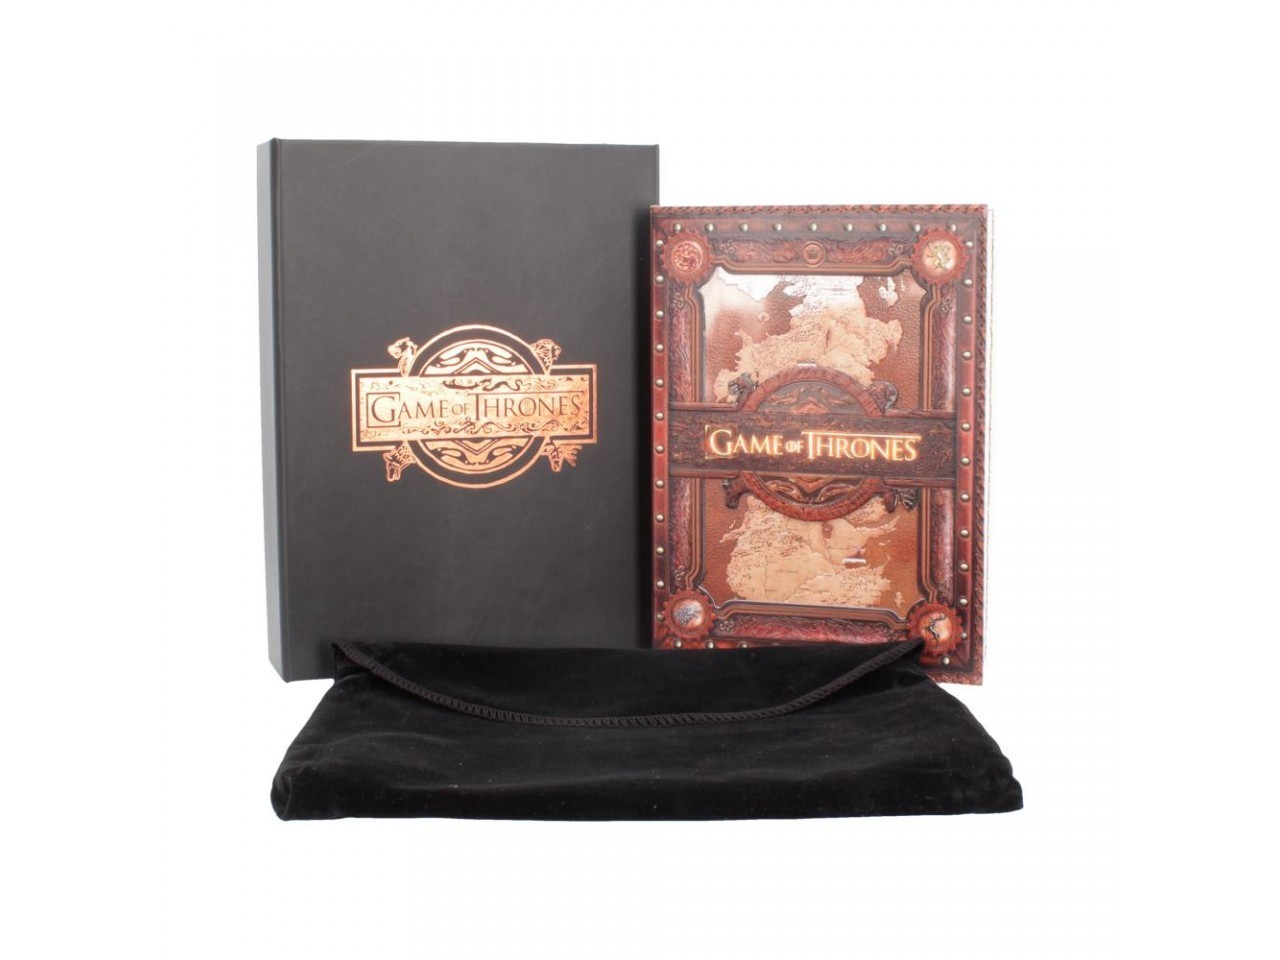 Game of Thrones Journal